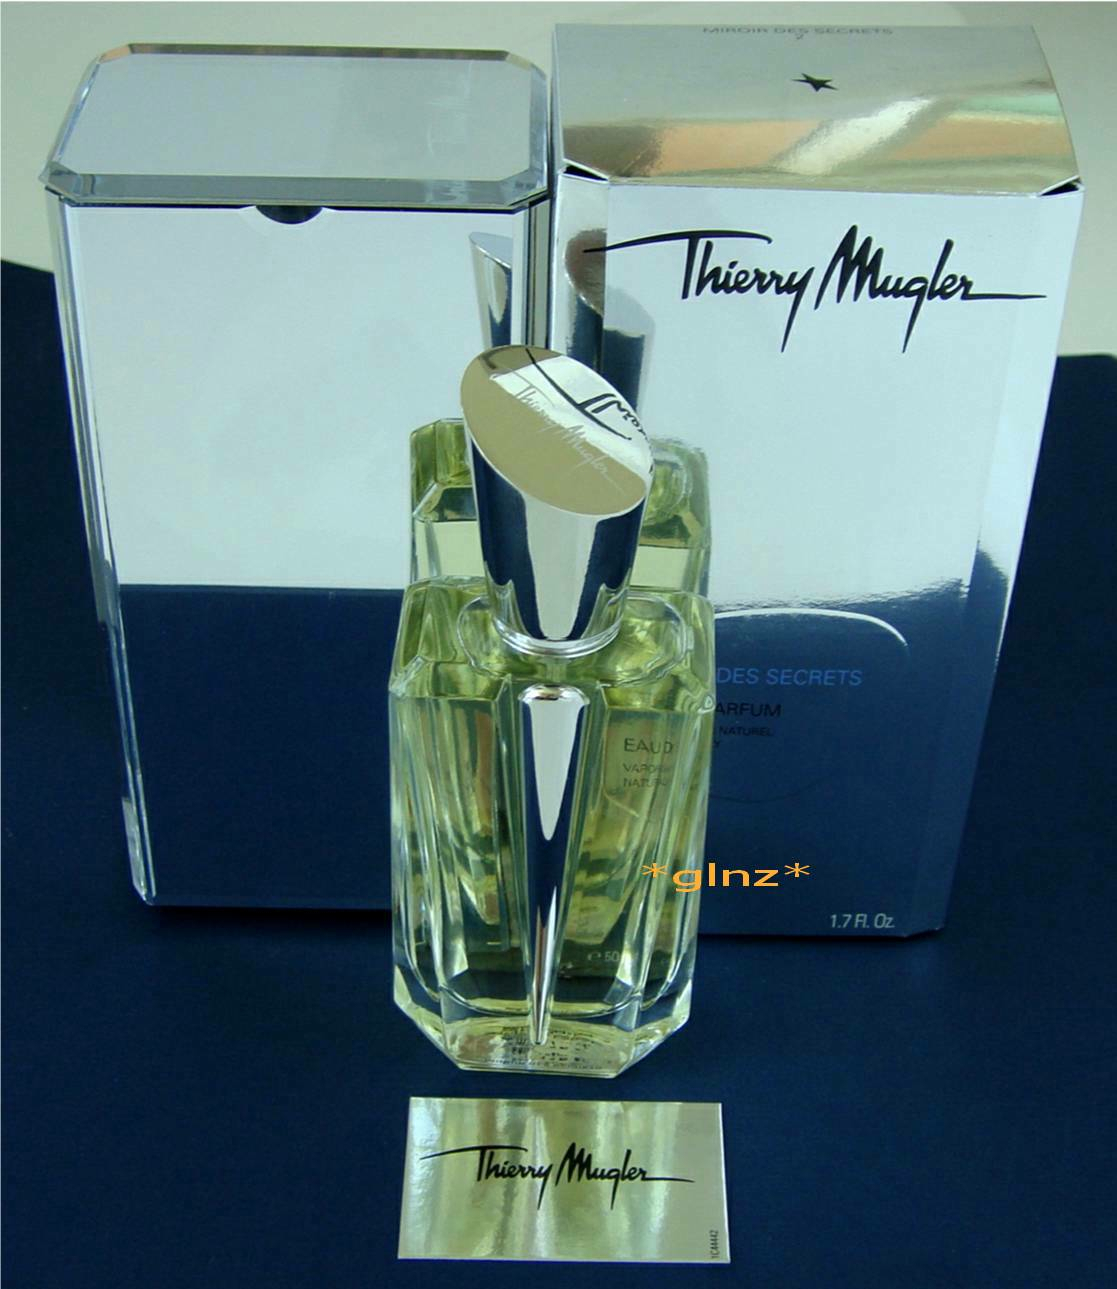 The perfume paradox worldofbeautytips for Miroir thierry mugler